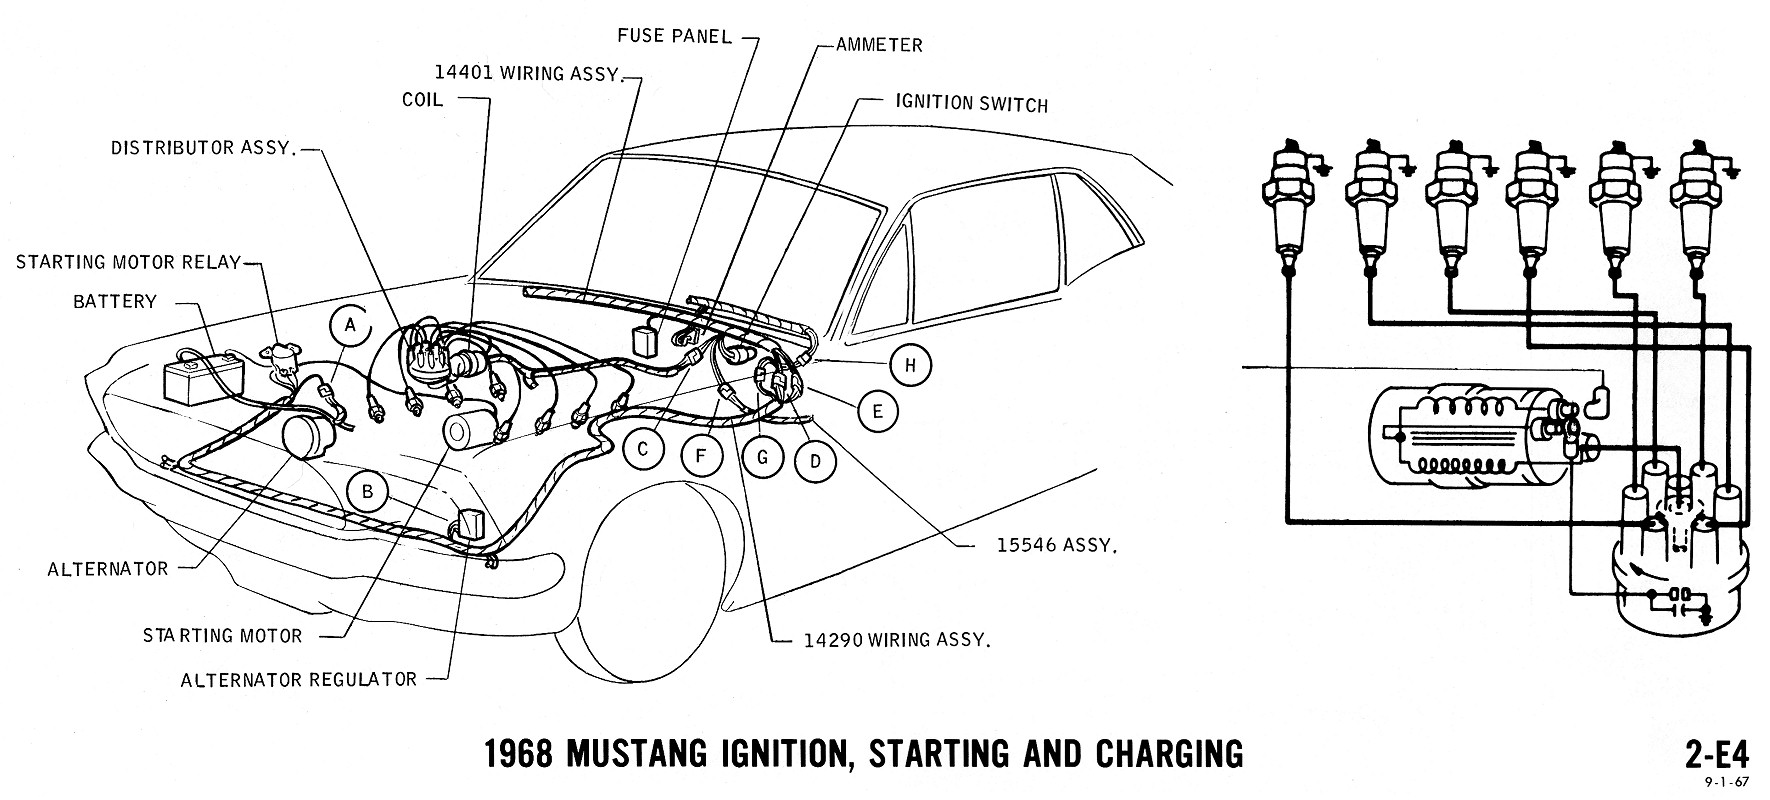 1968 mustang wiring diagrams and vacuum schematics average joe 1968 mustang wiring diagram ignition starting charging 2 cheapraybanclubmaster